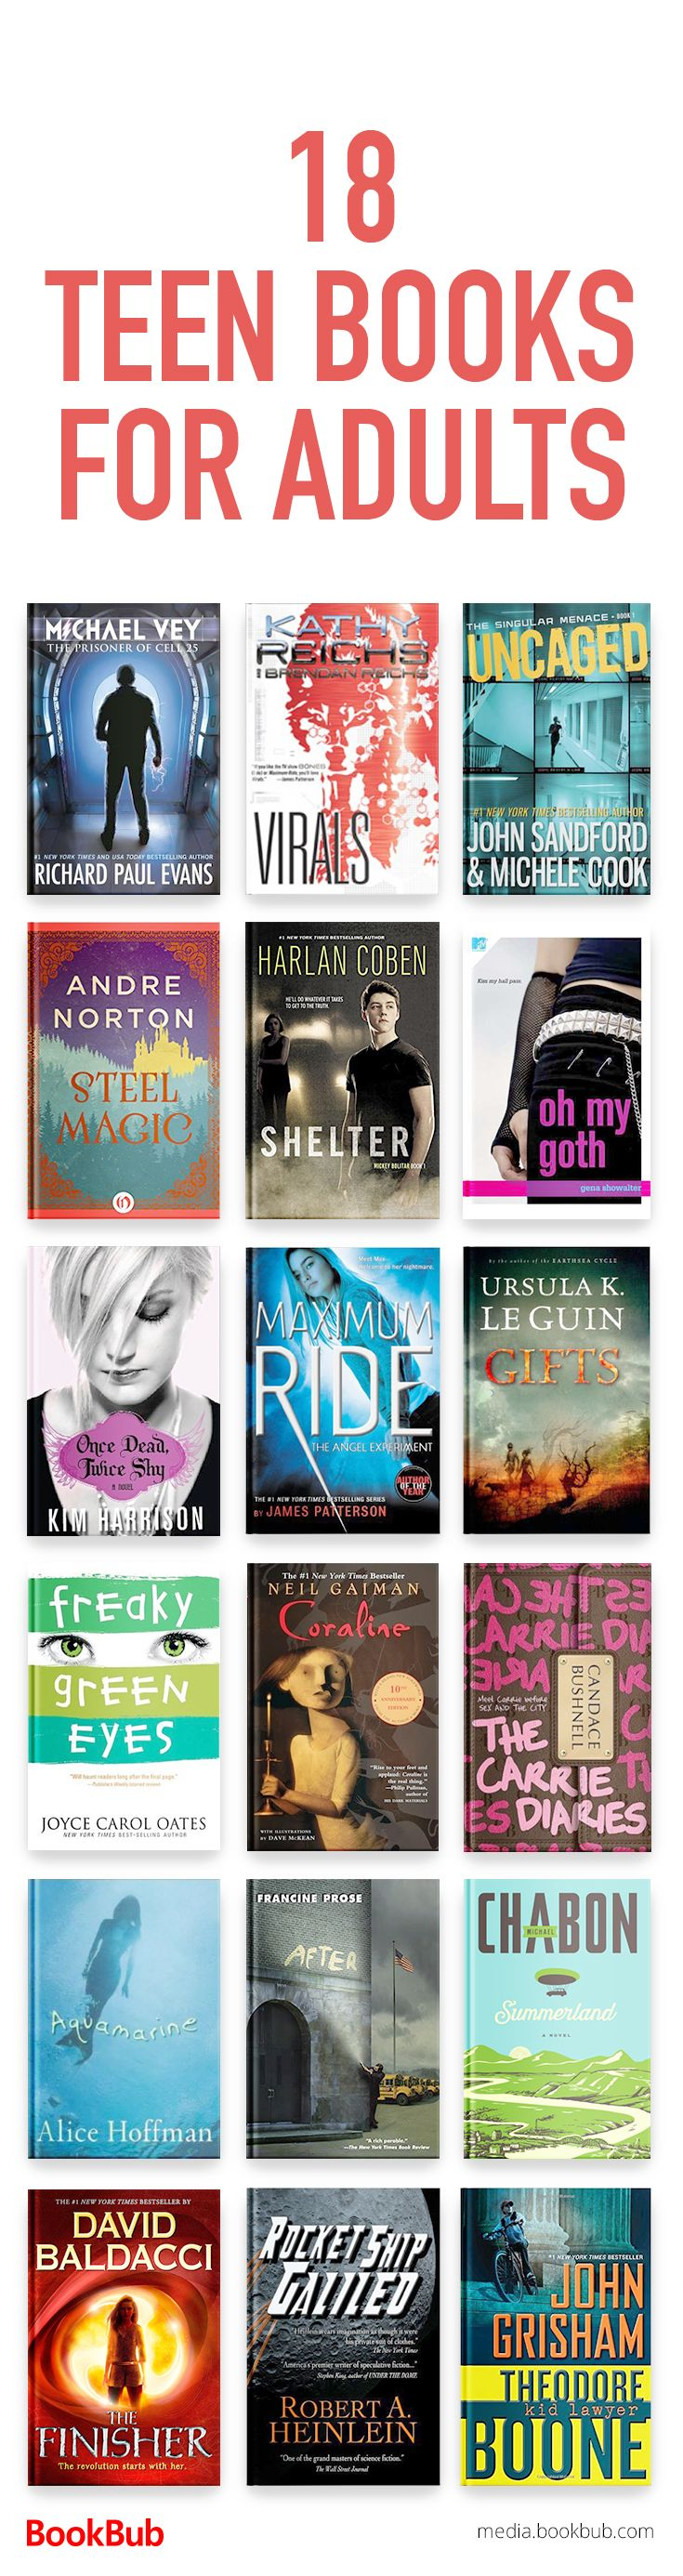 Young fiction New adult